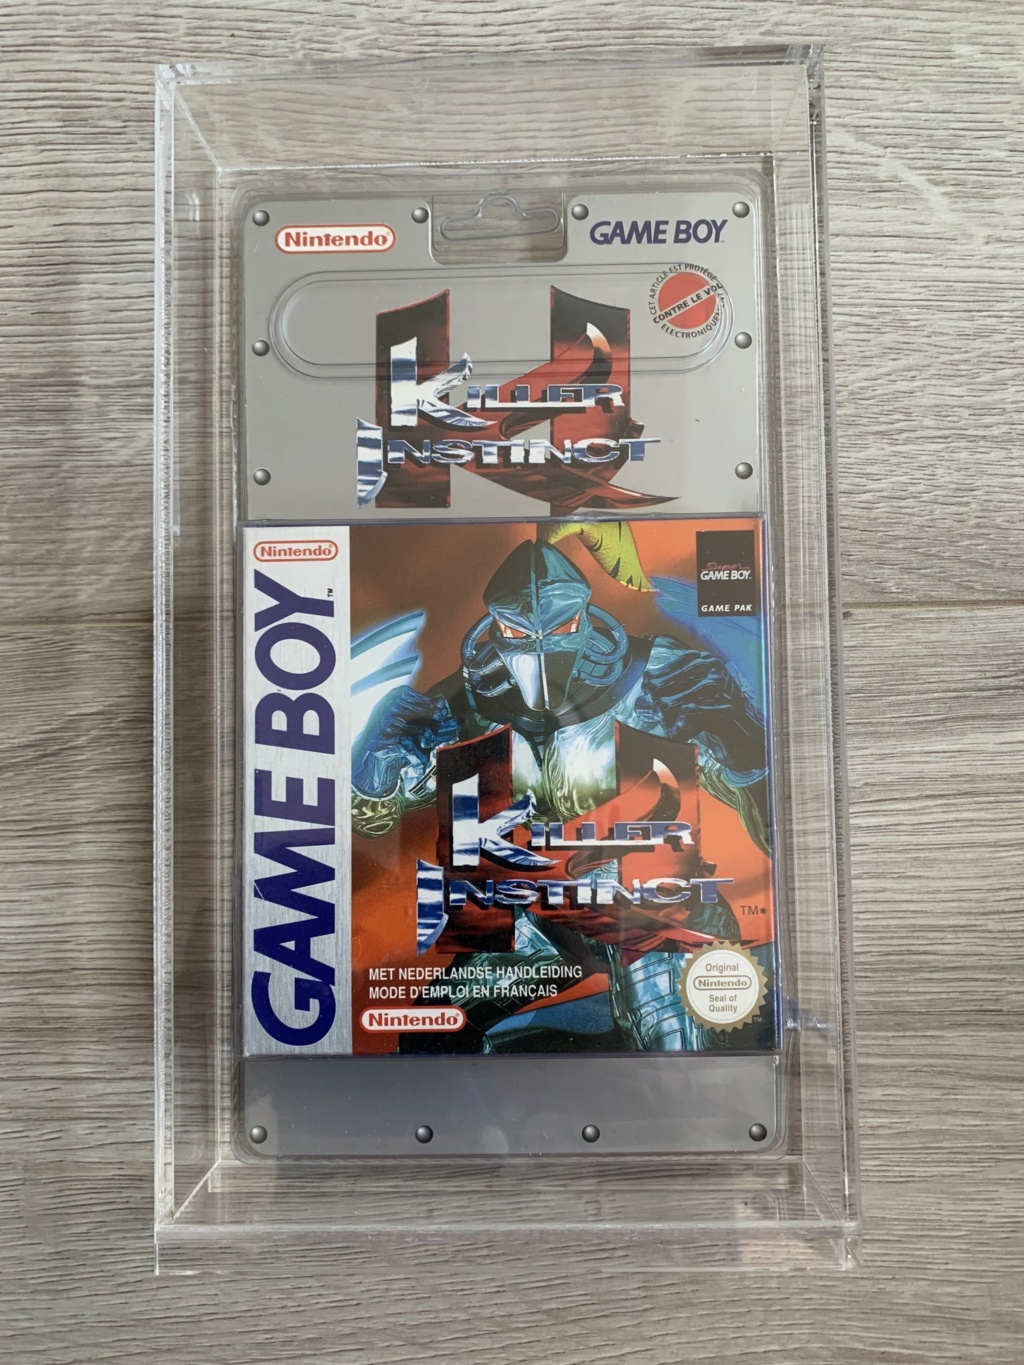 Collection Blisters Rigides Game Boy 0151fa10